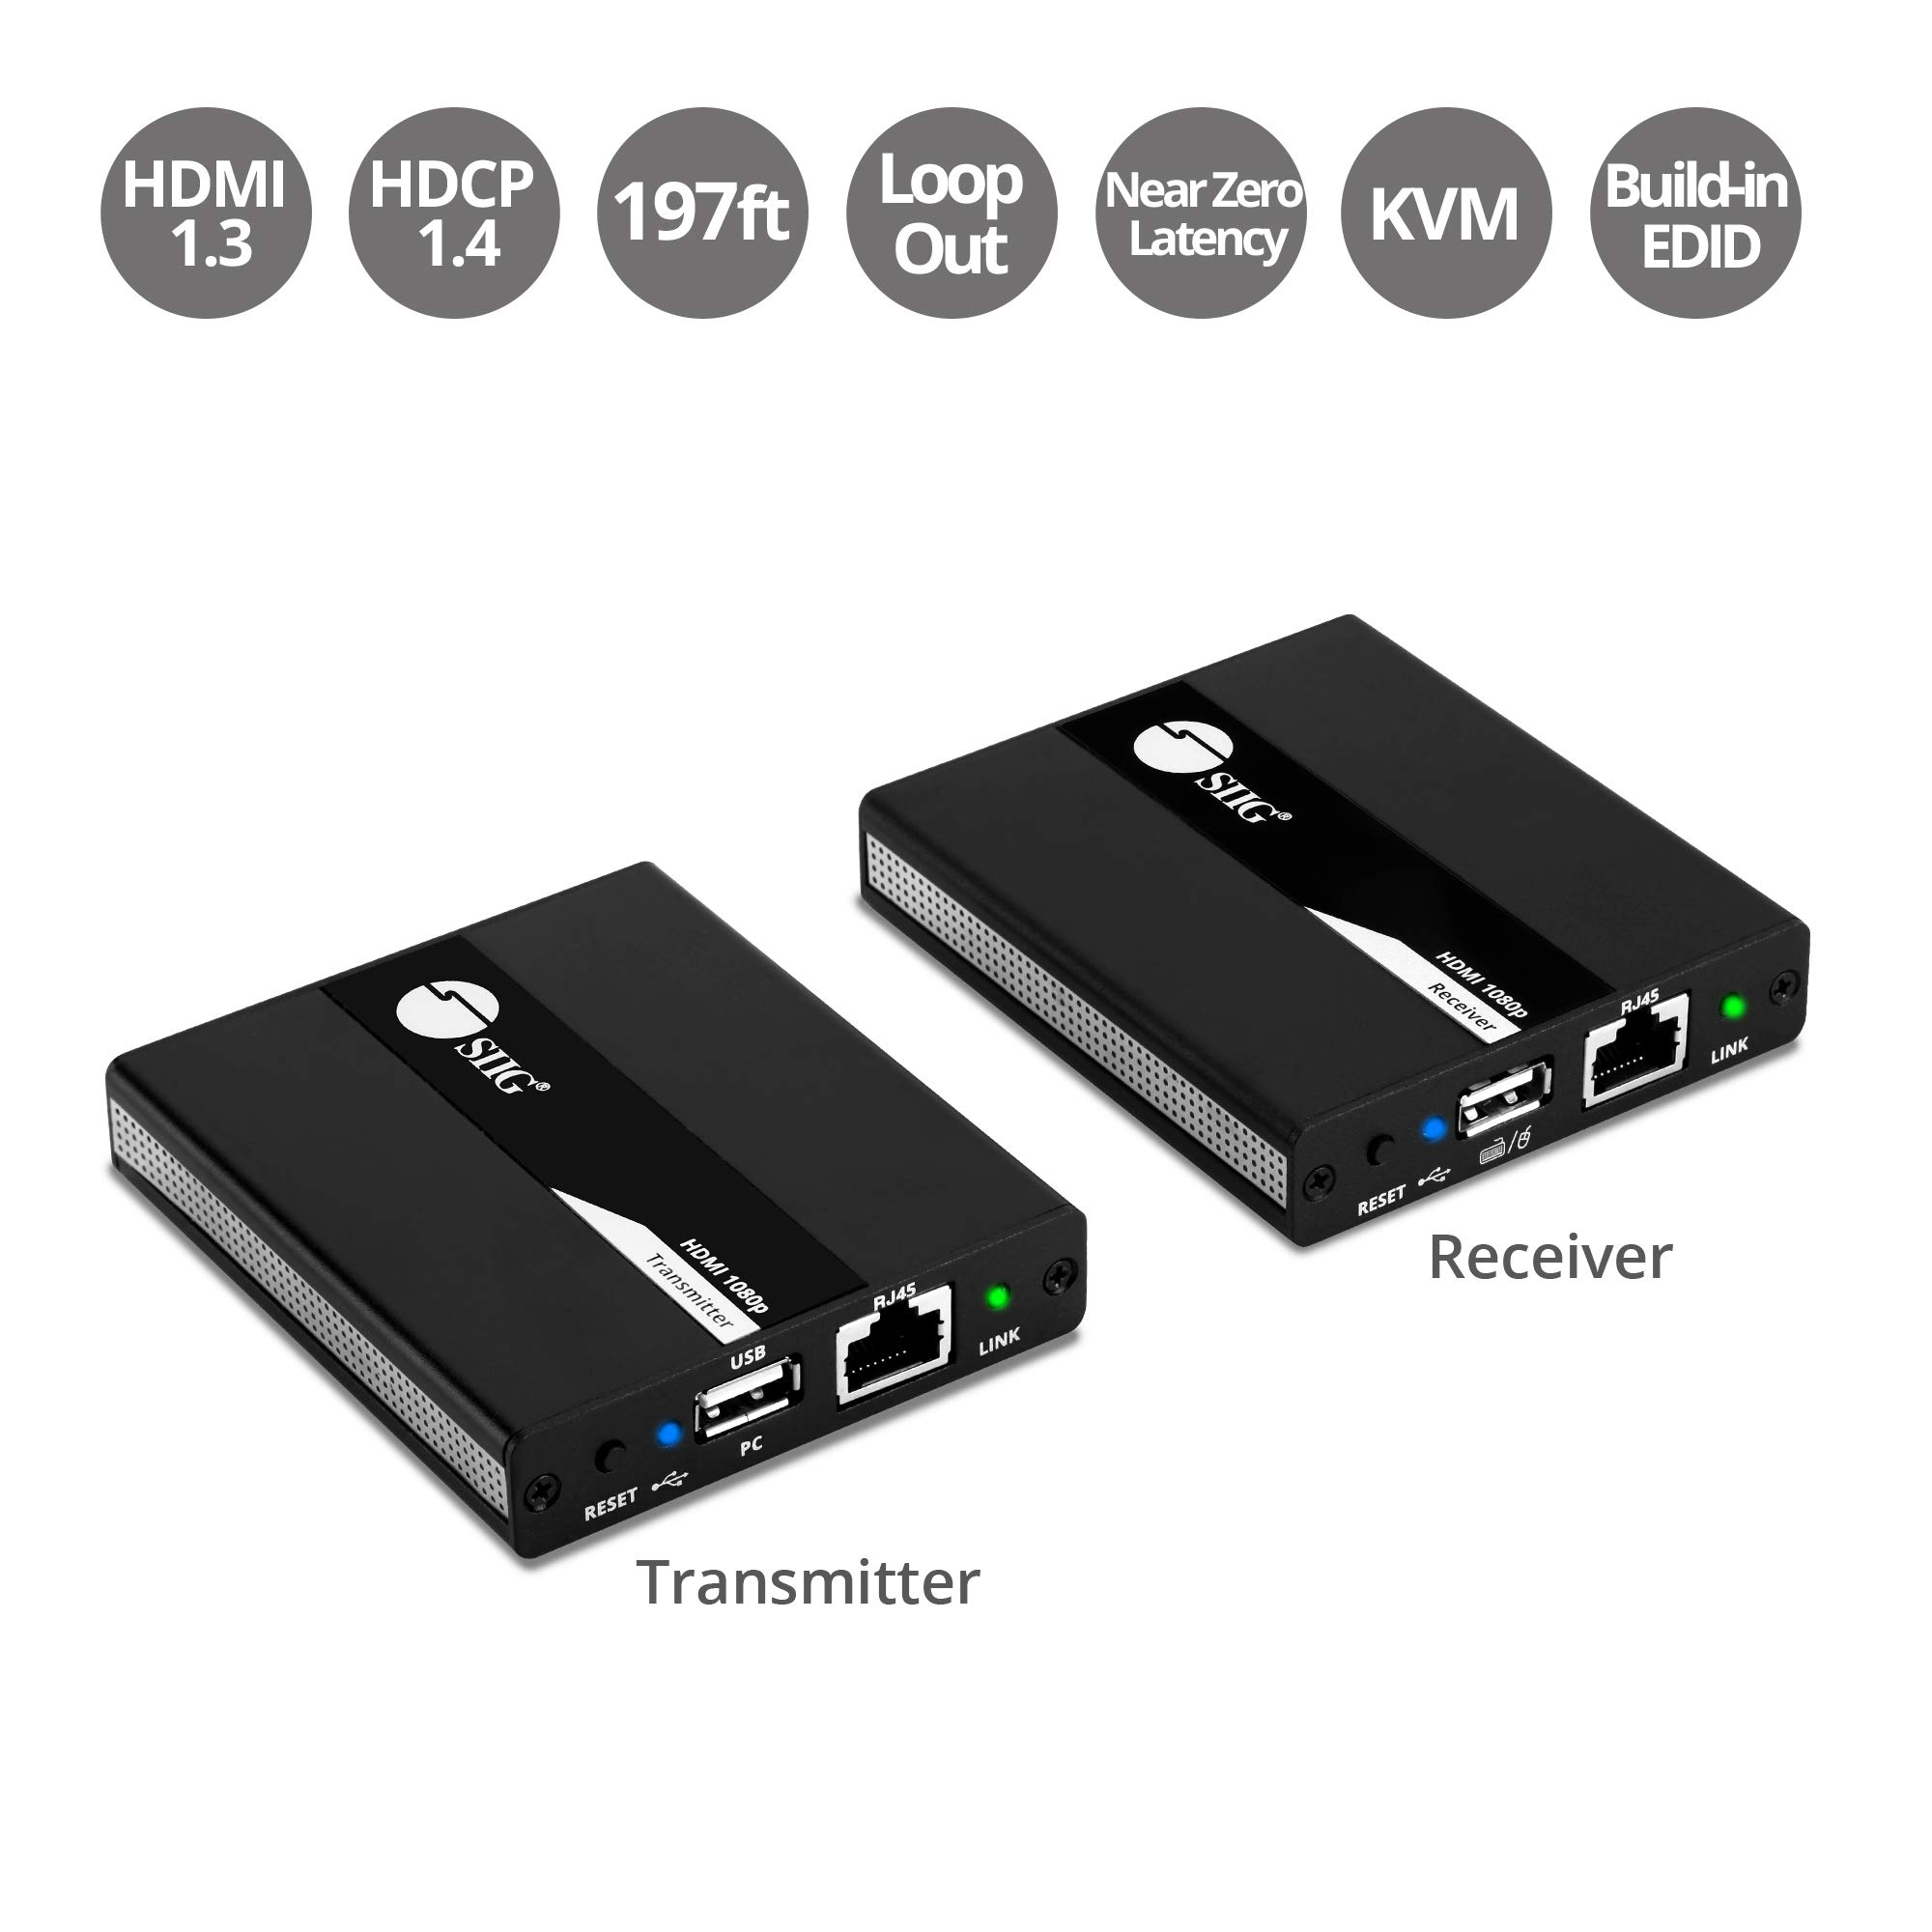 SIIG 1080p HDMI USB KVM Extender Over Cat 5e/6, with PoC Transmitter and Receiver - Near Zero Latency - Signal up to 196ft 60M by SIIG